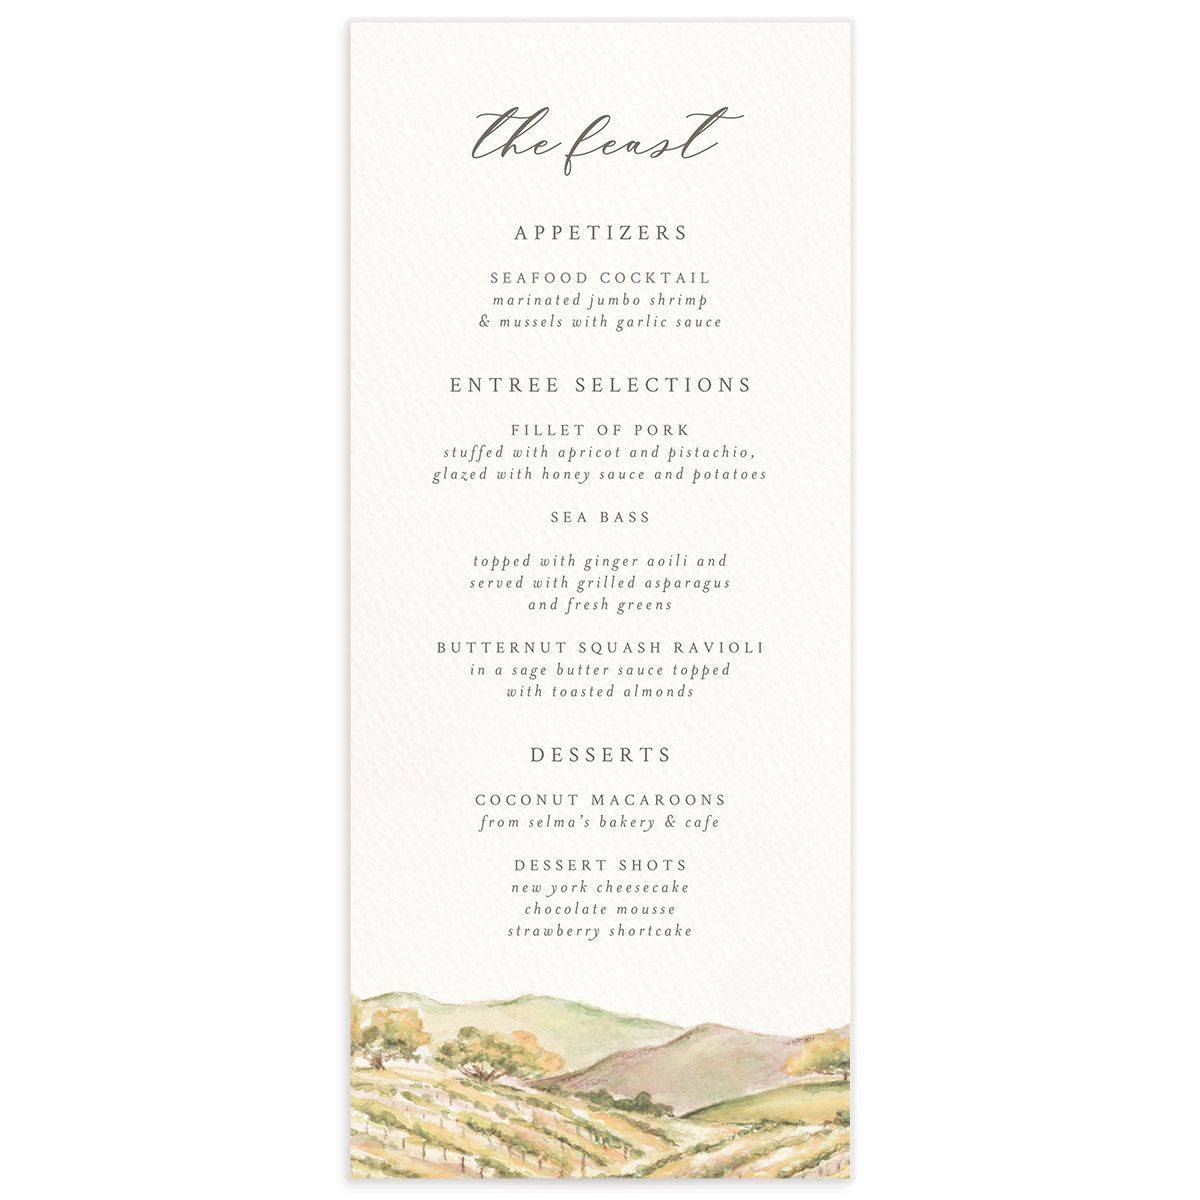 Painted Winery menu